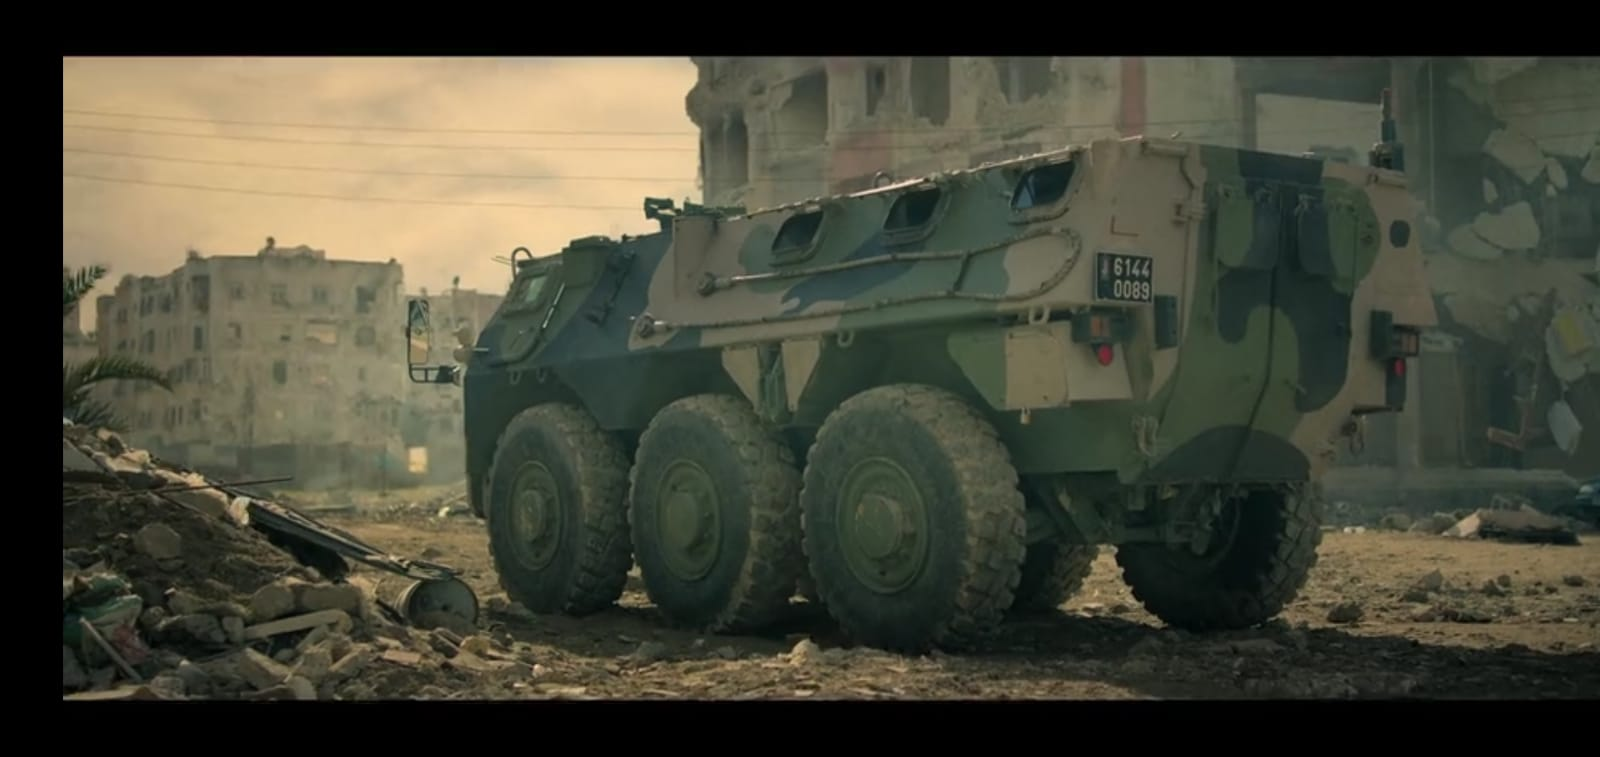 Les FAR et le Cinema / Moroccan Armed Forces in Movies - Page 11 111